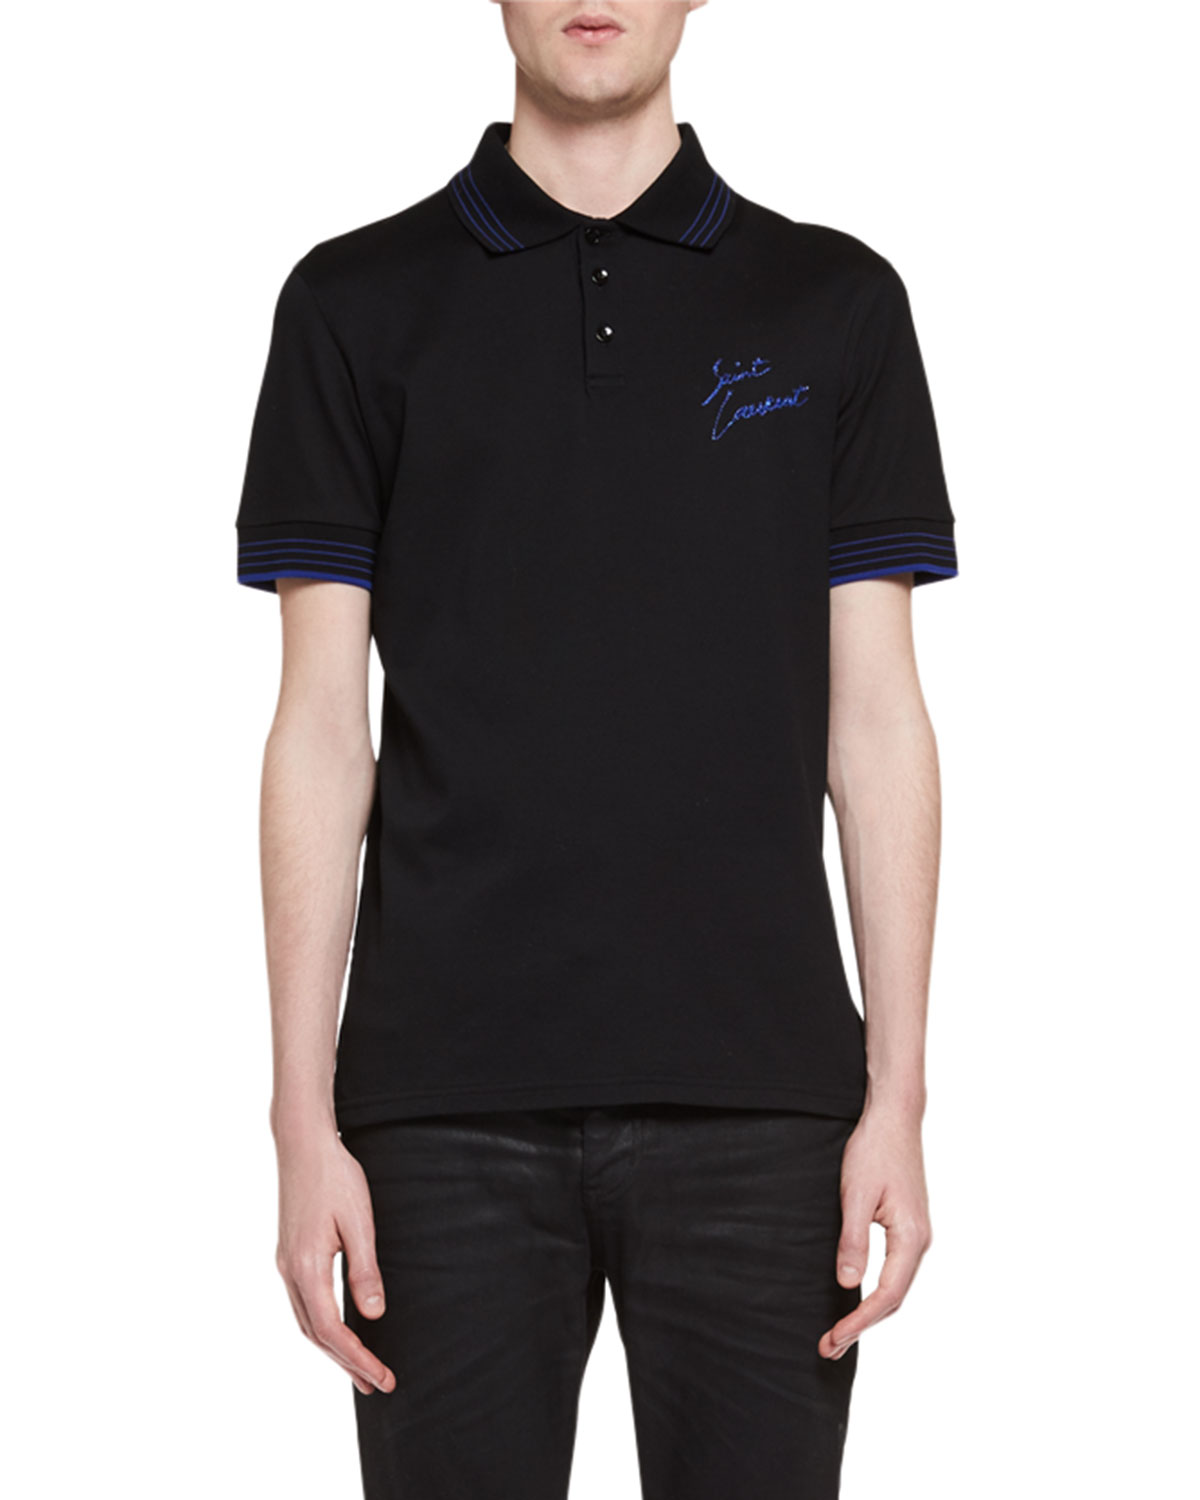 27f655c2e3f Saint Laurent Cotton Pique Polo Shirt | Neiman Marcus